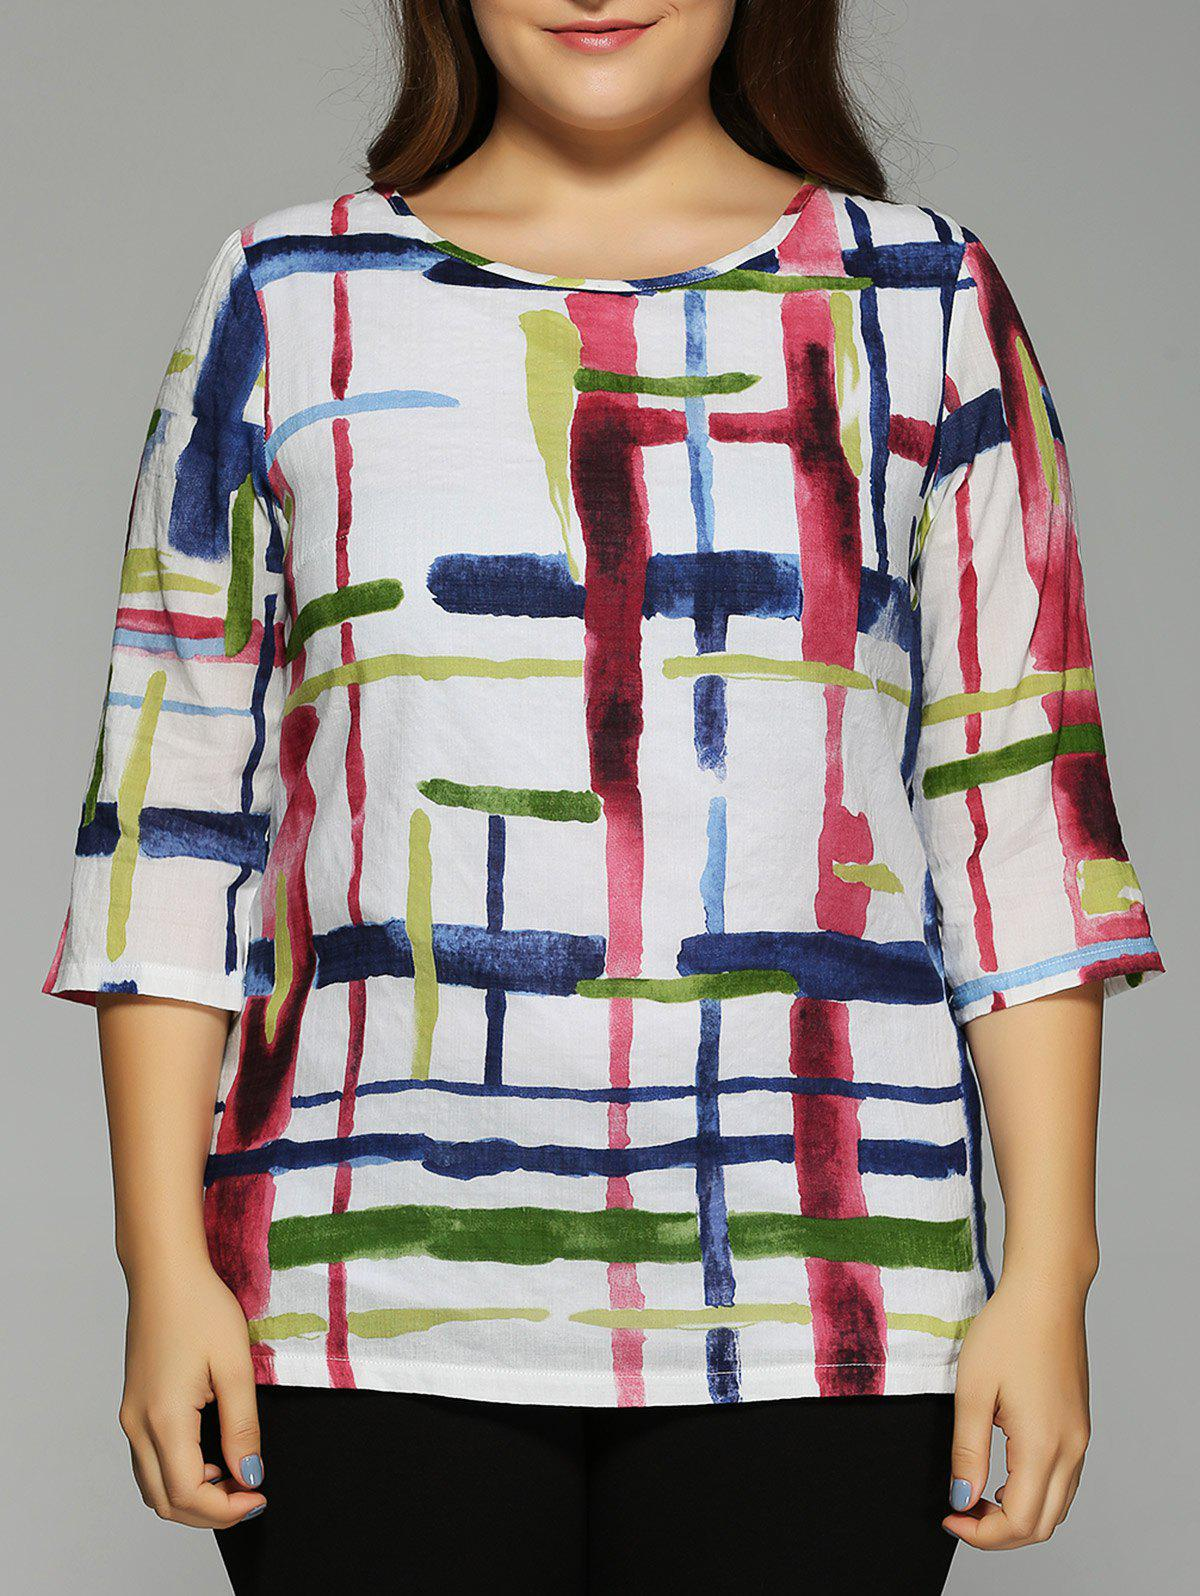 Oversized Fashion Abstract Geometric Painting Blouse